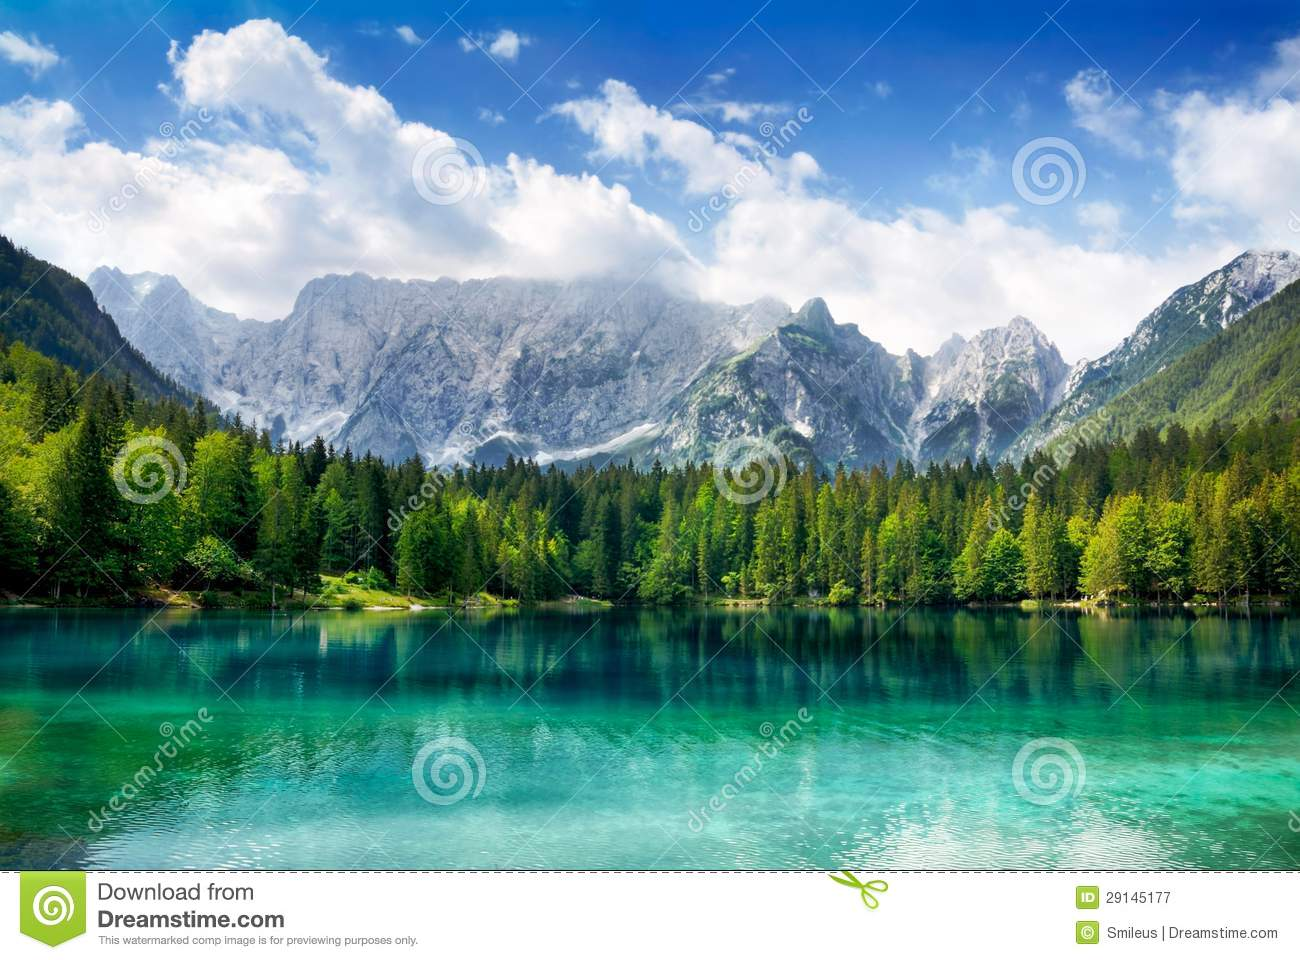 Wild Animals 3d Wallpapers Beautiful Lake With Mountains In The Background Royalty